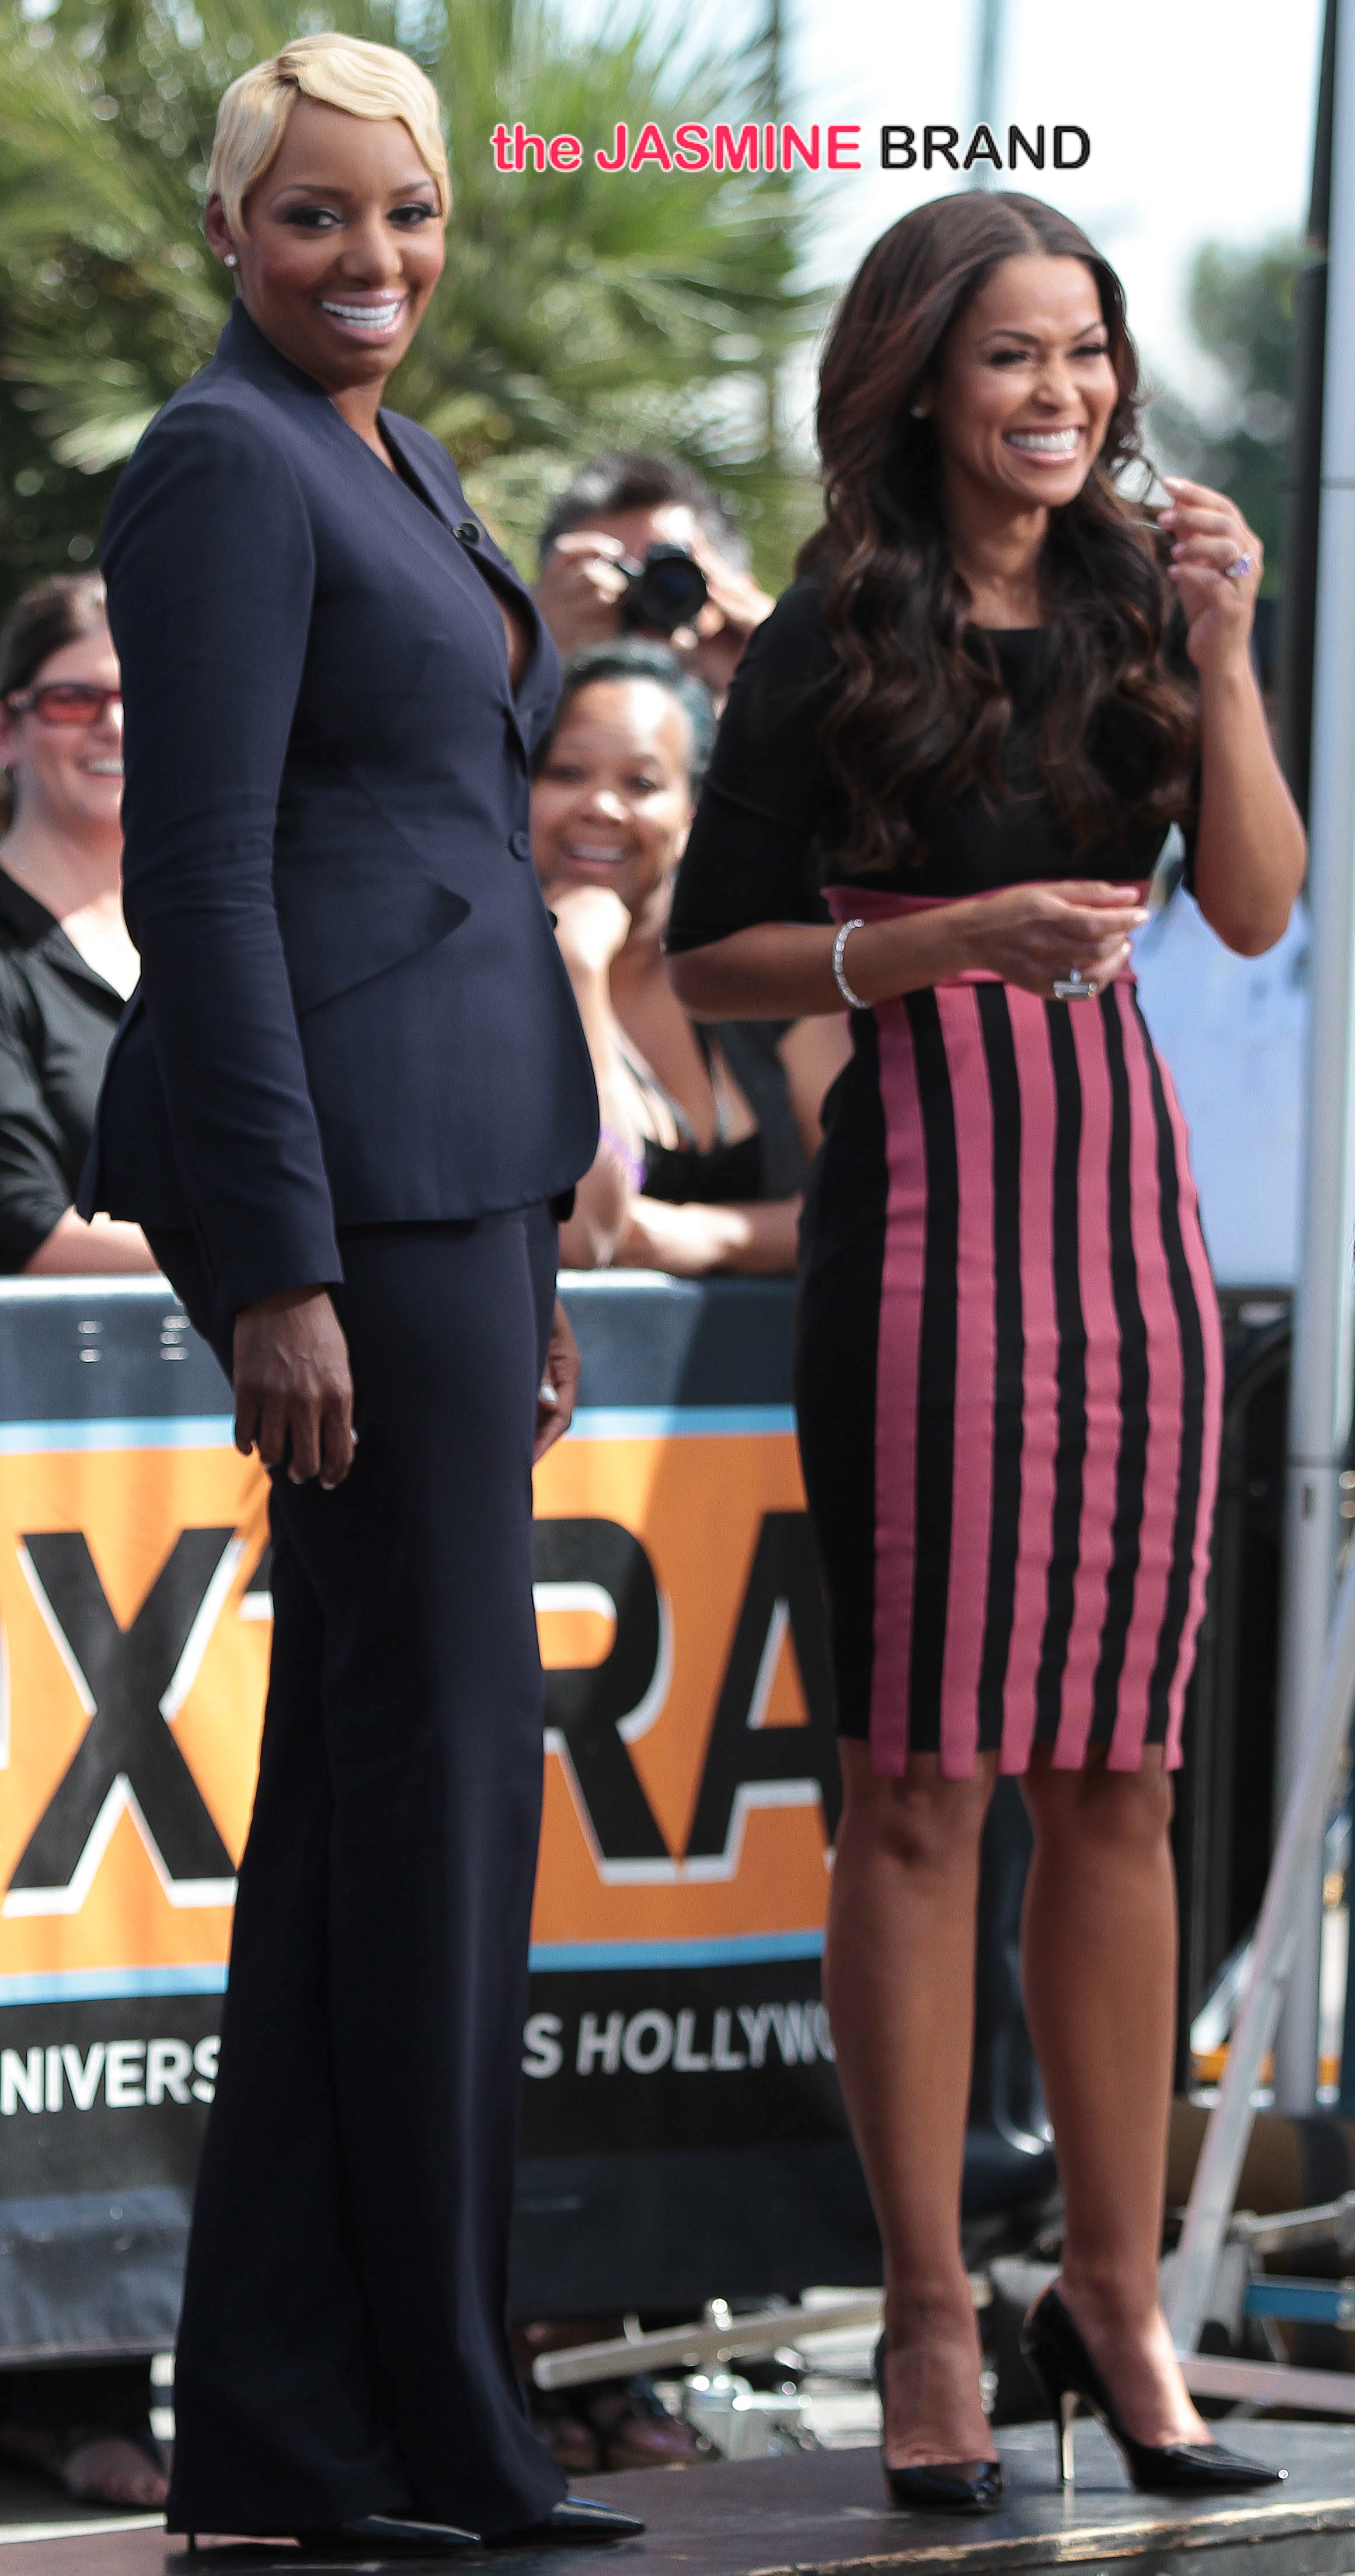 'Real Housewives of Atlanta star', NeNe Leakes, pays a visit to the set of 'Extra' and chats with Tracey Edmonds at Universal Studios in Universal City, CA